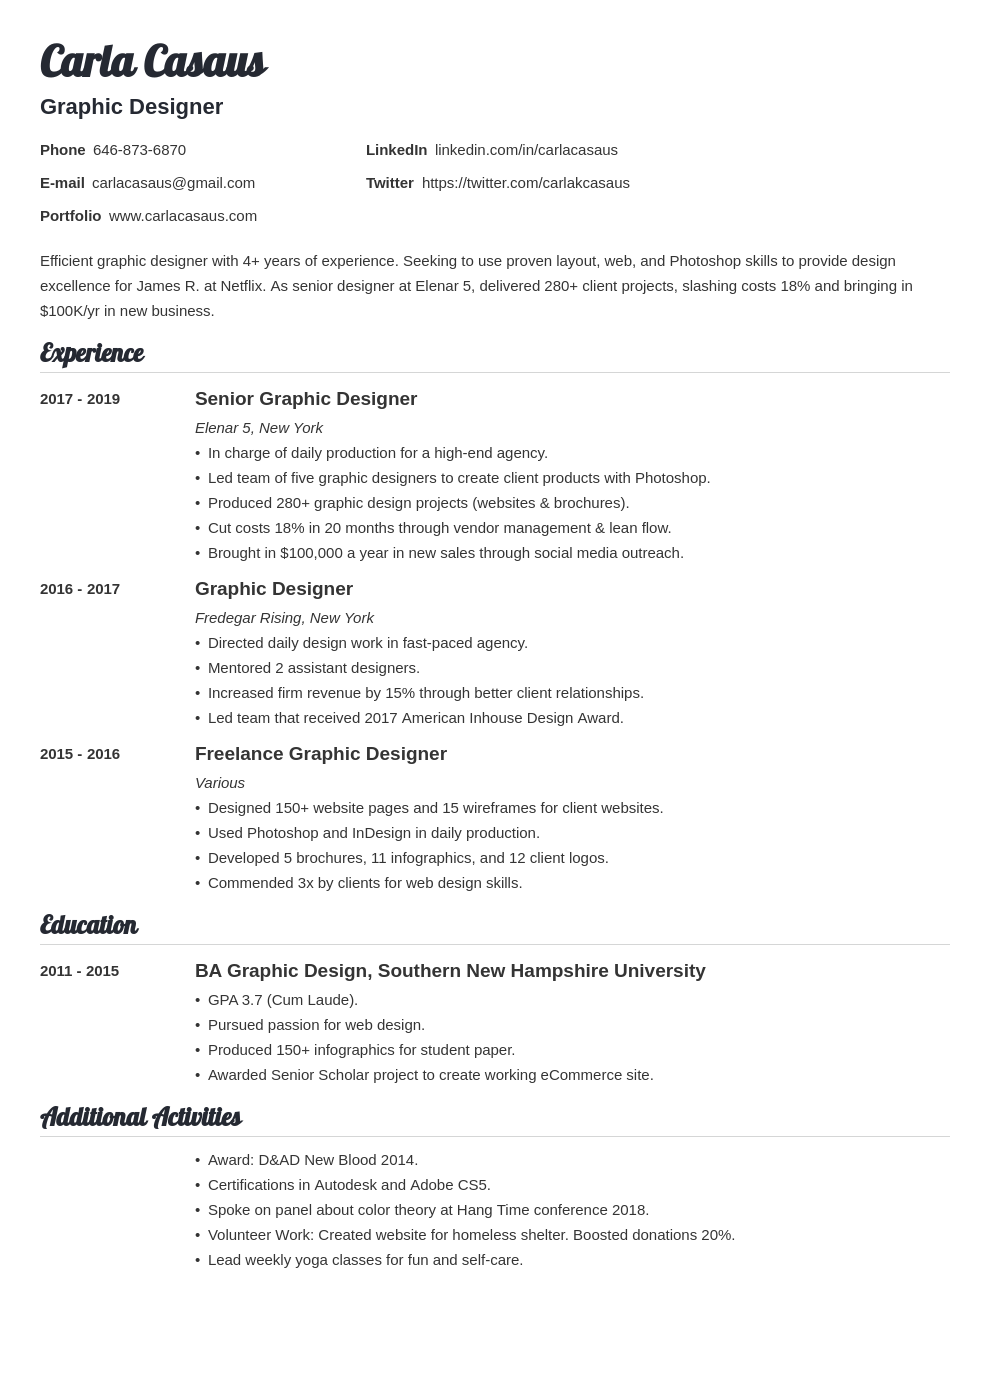 resume how to template valera